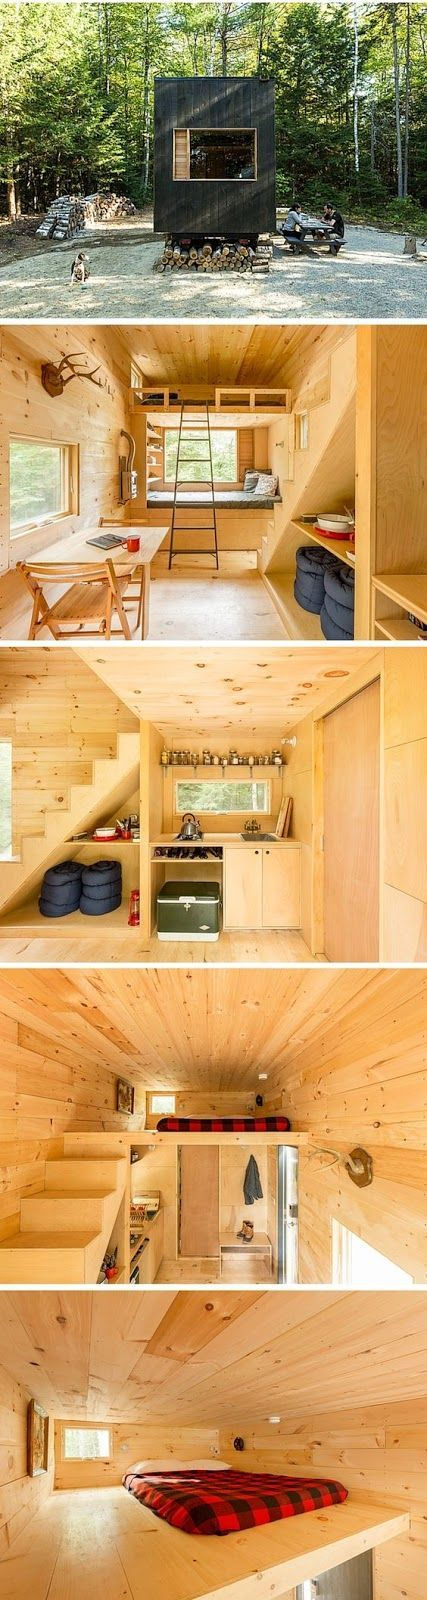 tiny house and small space living small house living tiny house tiny house design und tiny. Black Bedroom Furniture Sets. Home Design Ideas